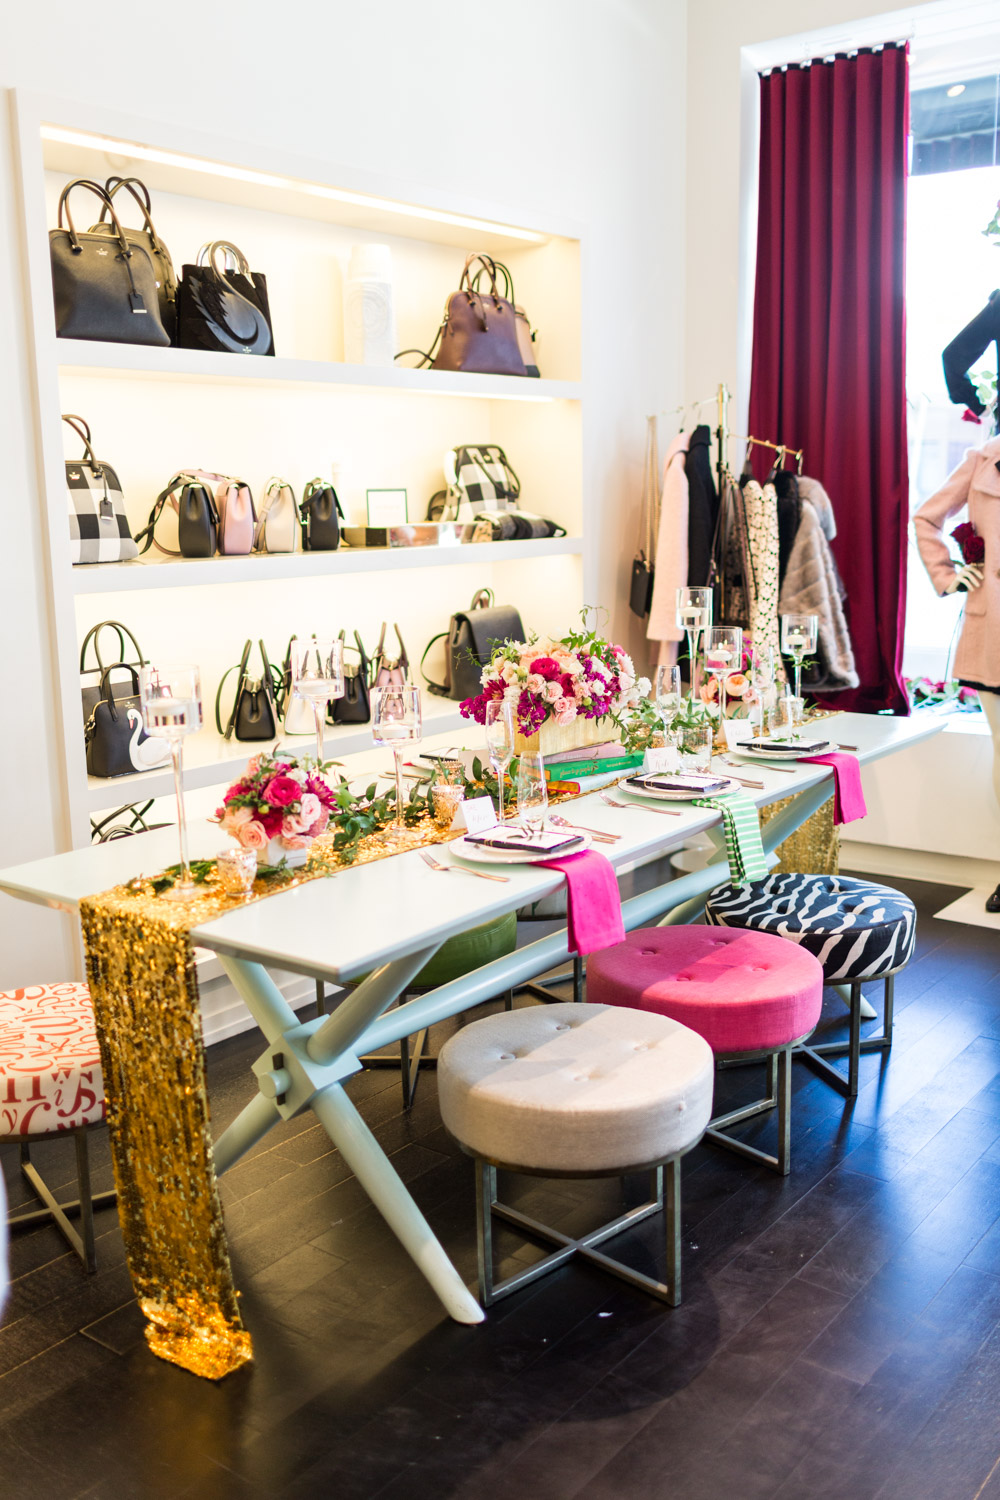 Kate Spade Bridal Event In San Diego With Couture Events And Cavin Elizabeth Photography